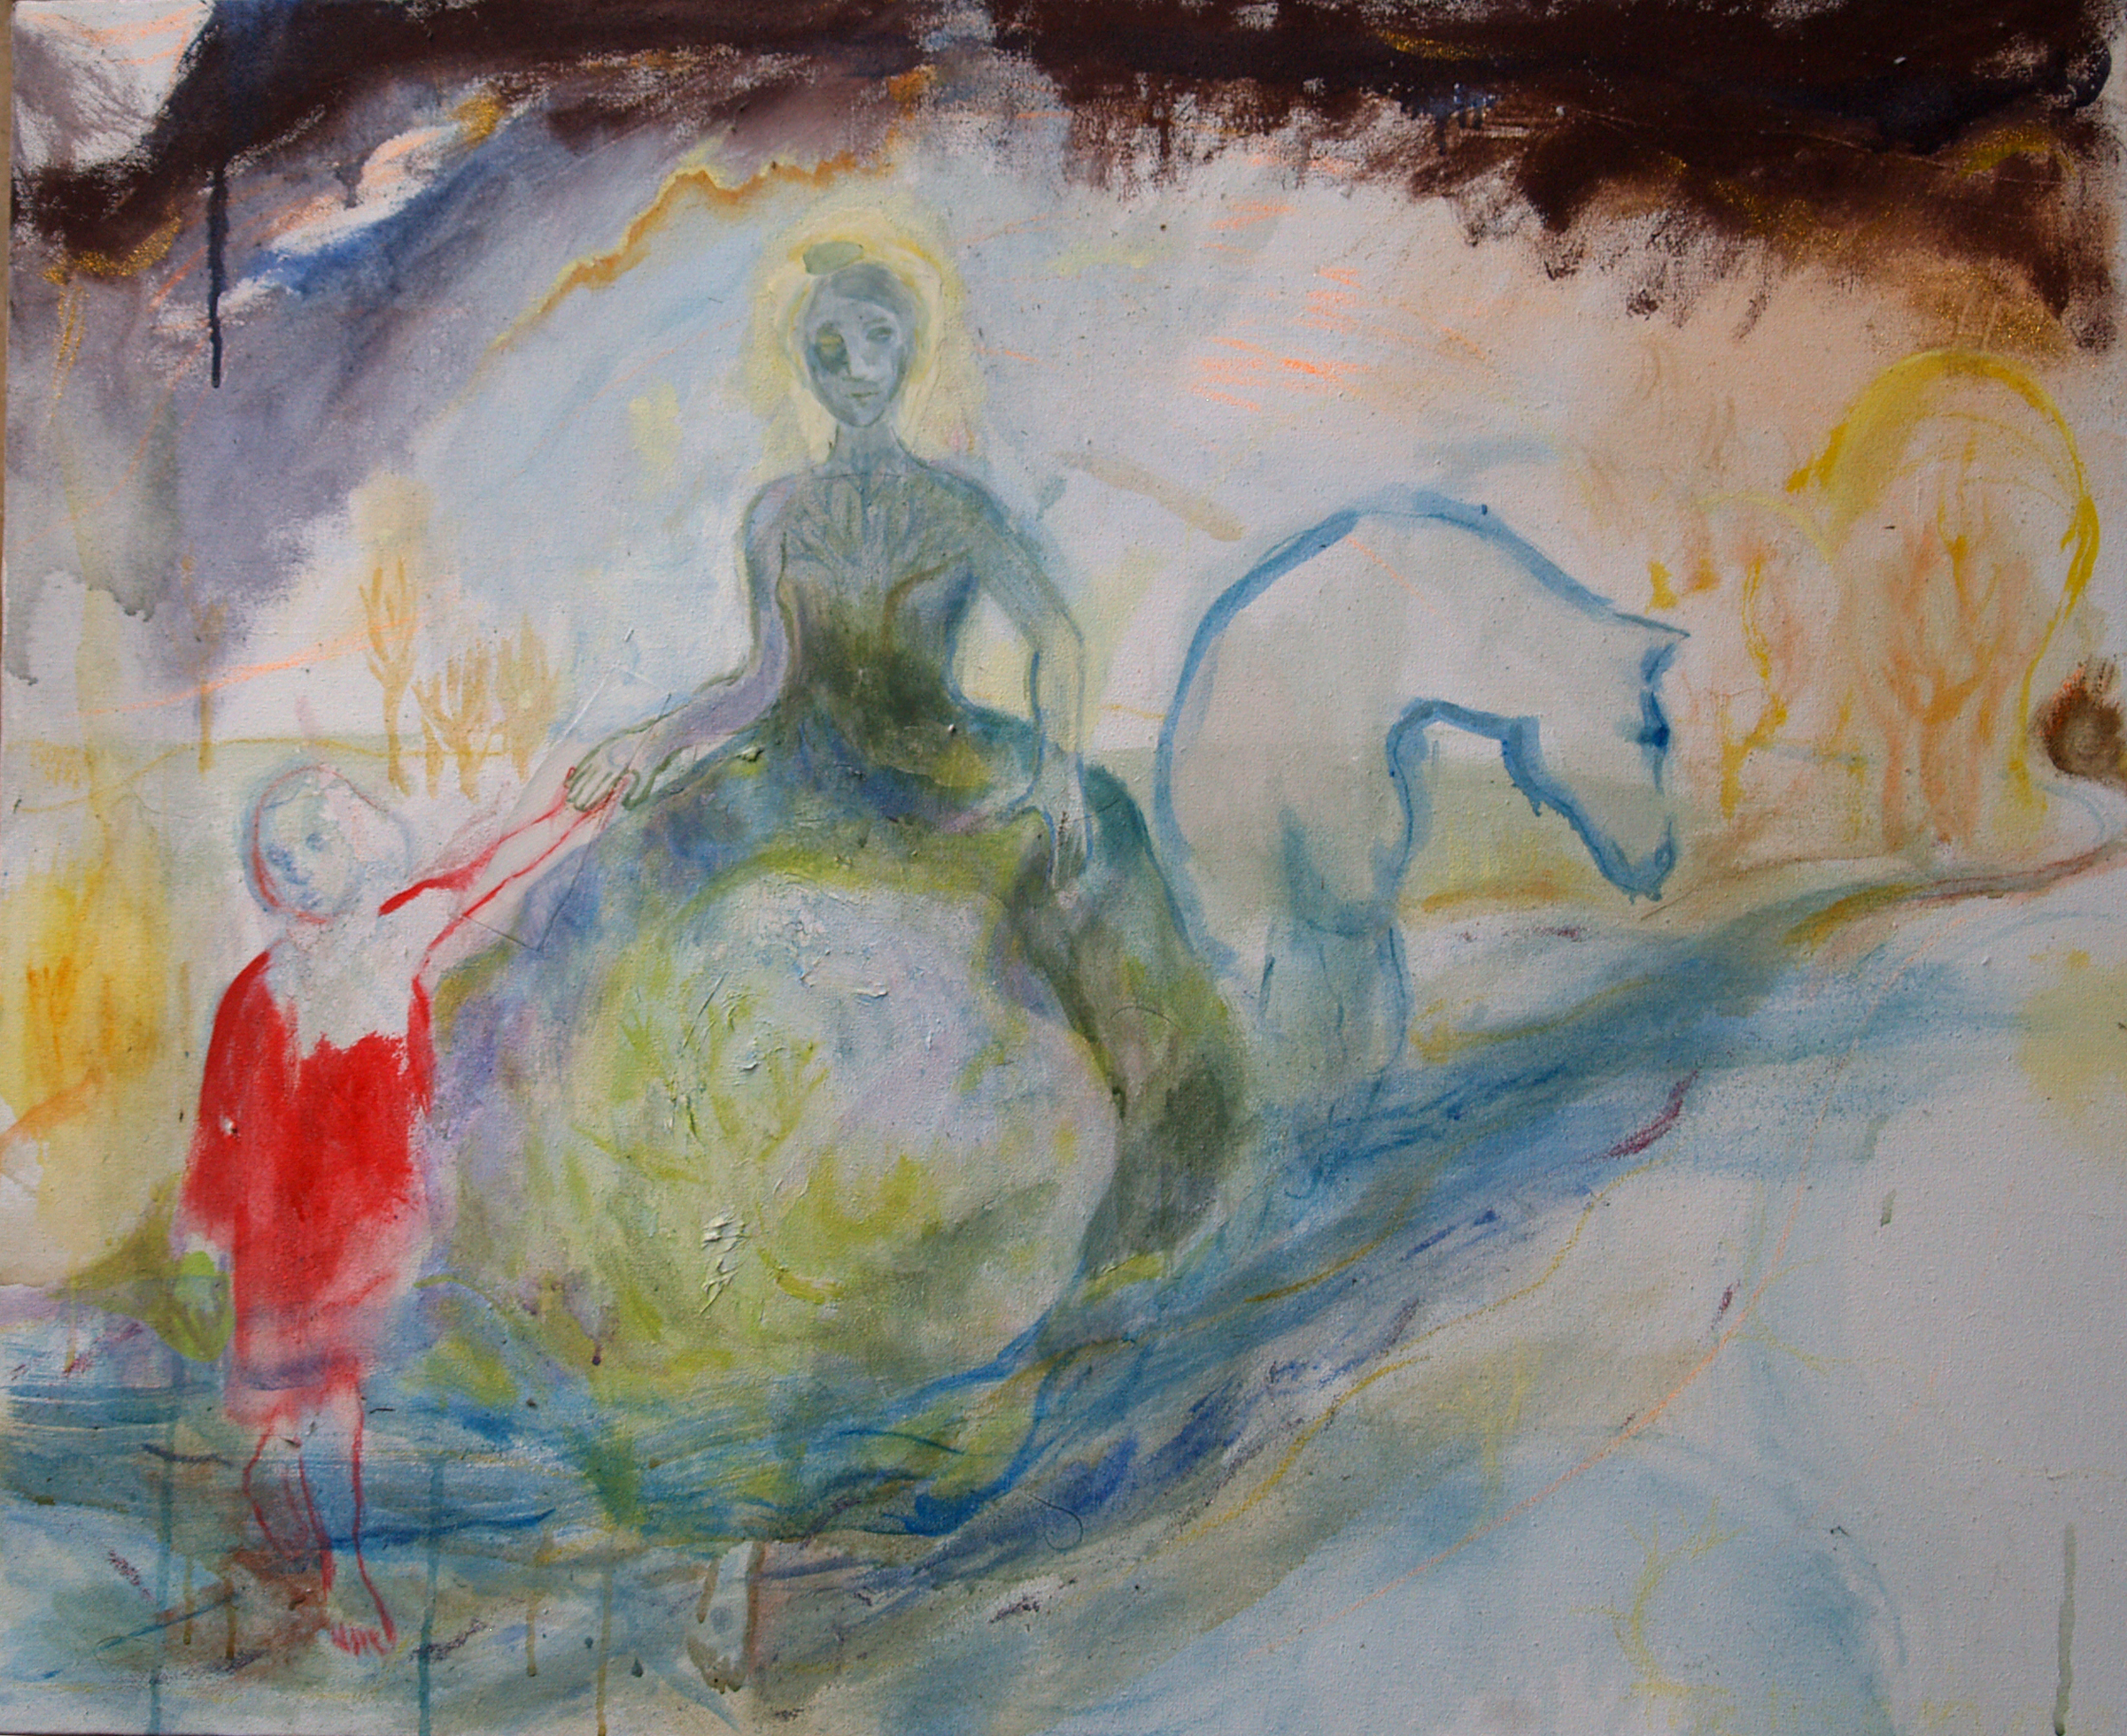 Journey with the Girl - 2006 - Acrylic, Mixed Media on Canvas -120 X 95cm